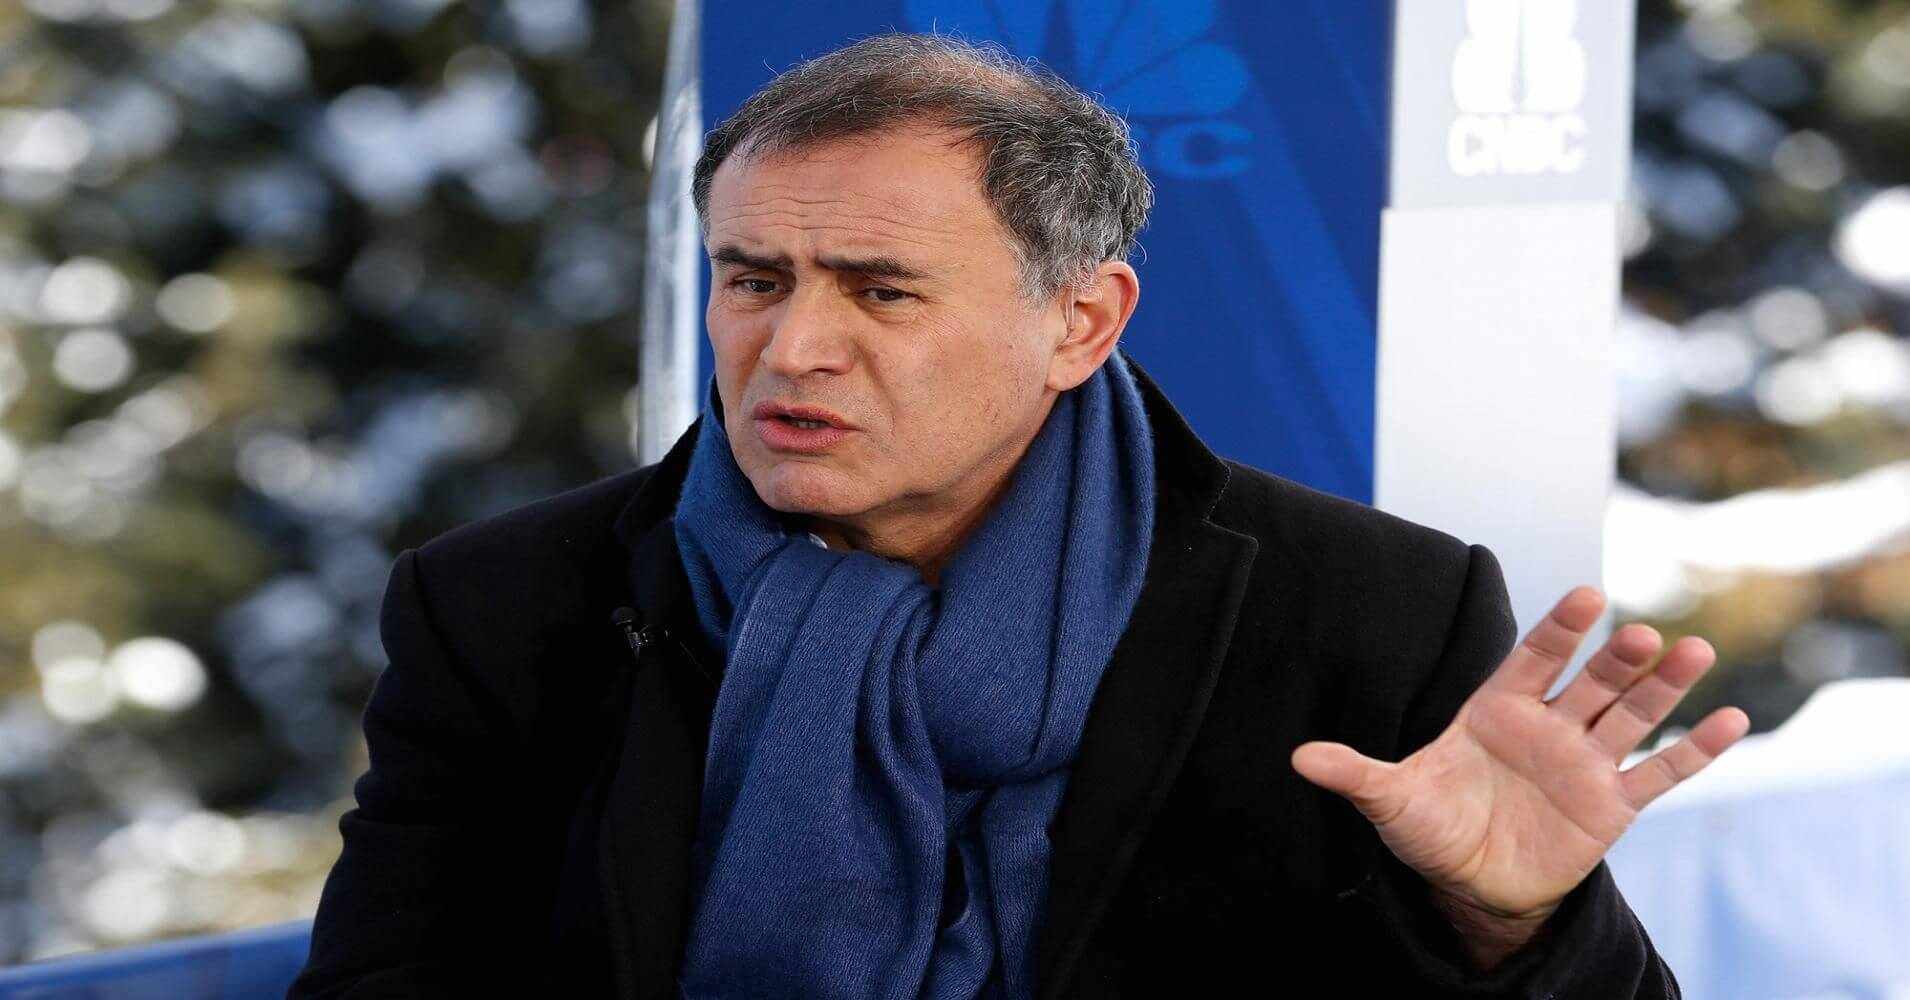 Photo of Crypto Critic Roubini Says Trump Playing With Economic Destruction